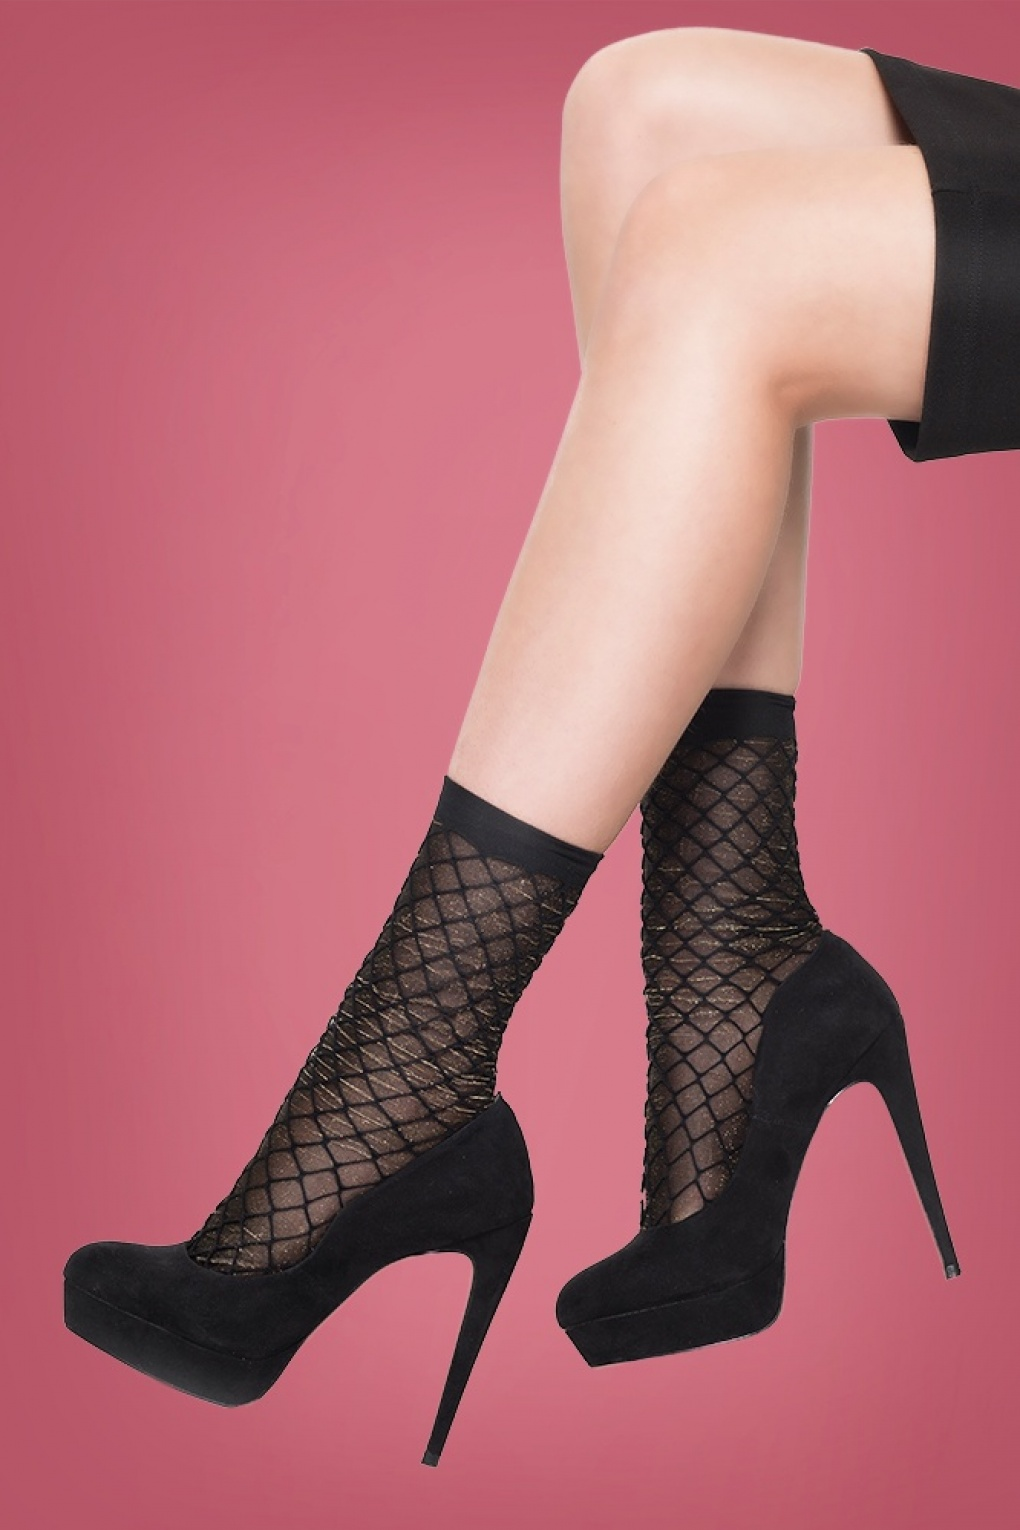 Seamed Stockings, Nylons, Tights 50s Lurex Diamond Fishnet Socks in Black and Silver £6.09 AT vintagedancer.com